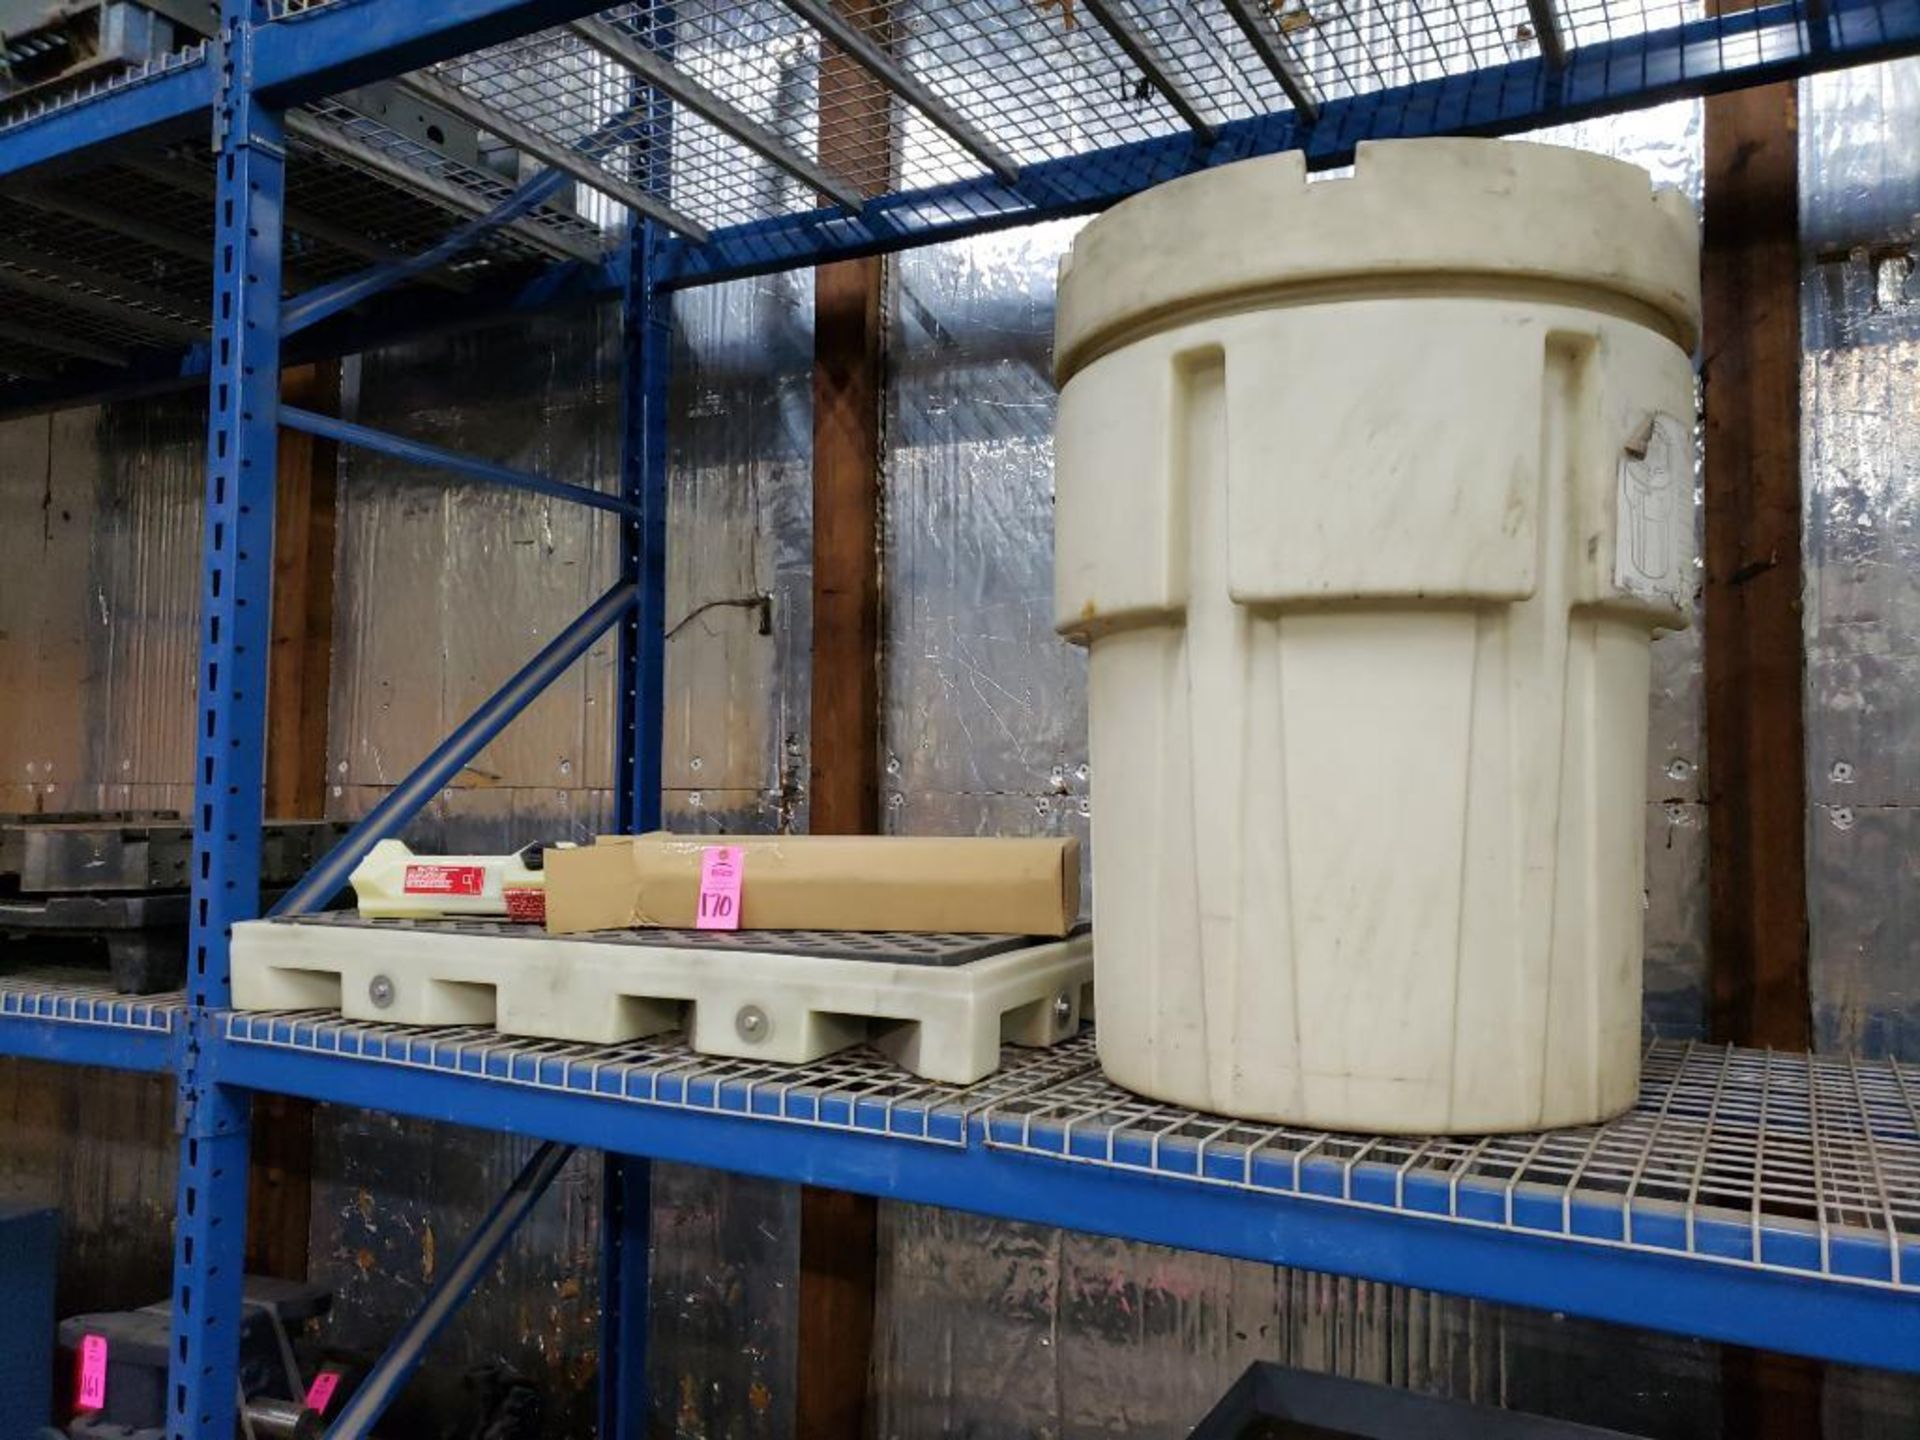 Lot 170 - Qty 3 - Assorted spill containment units.